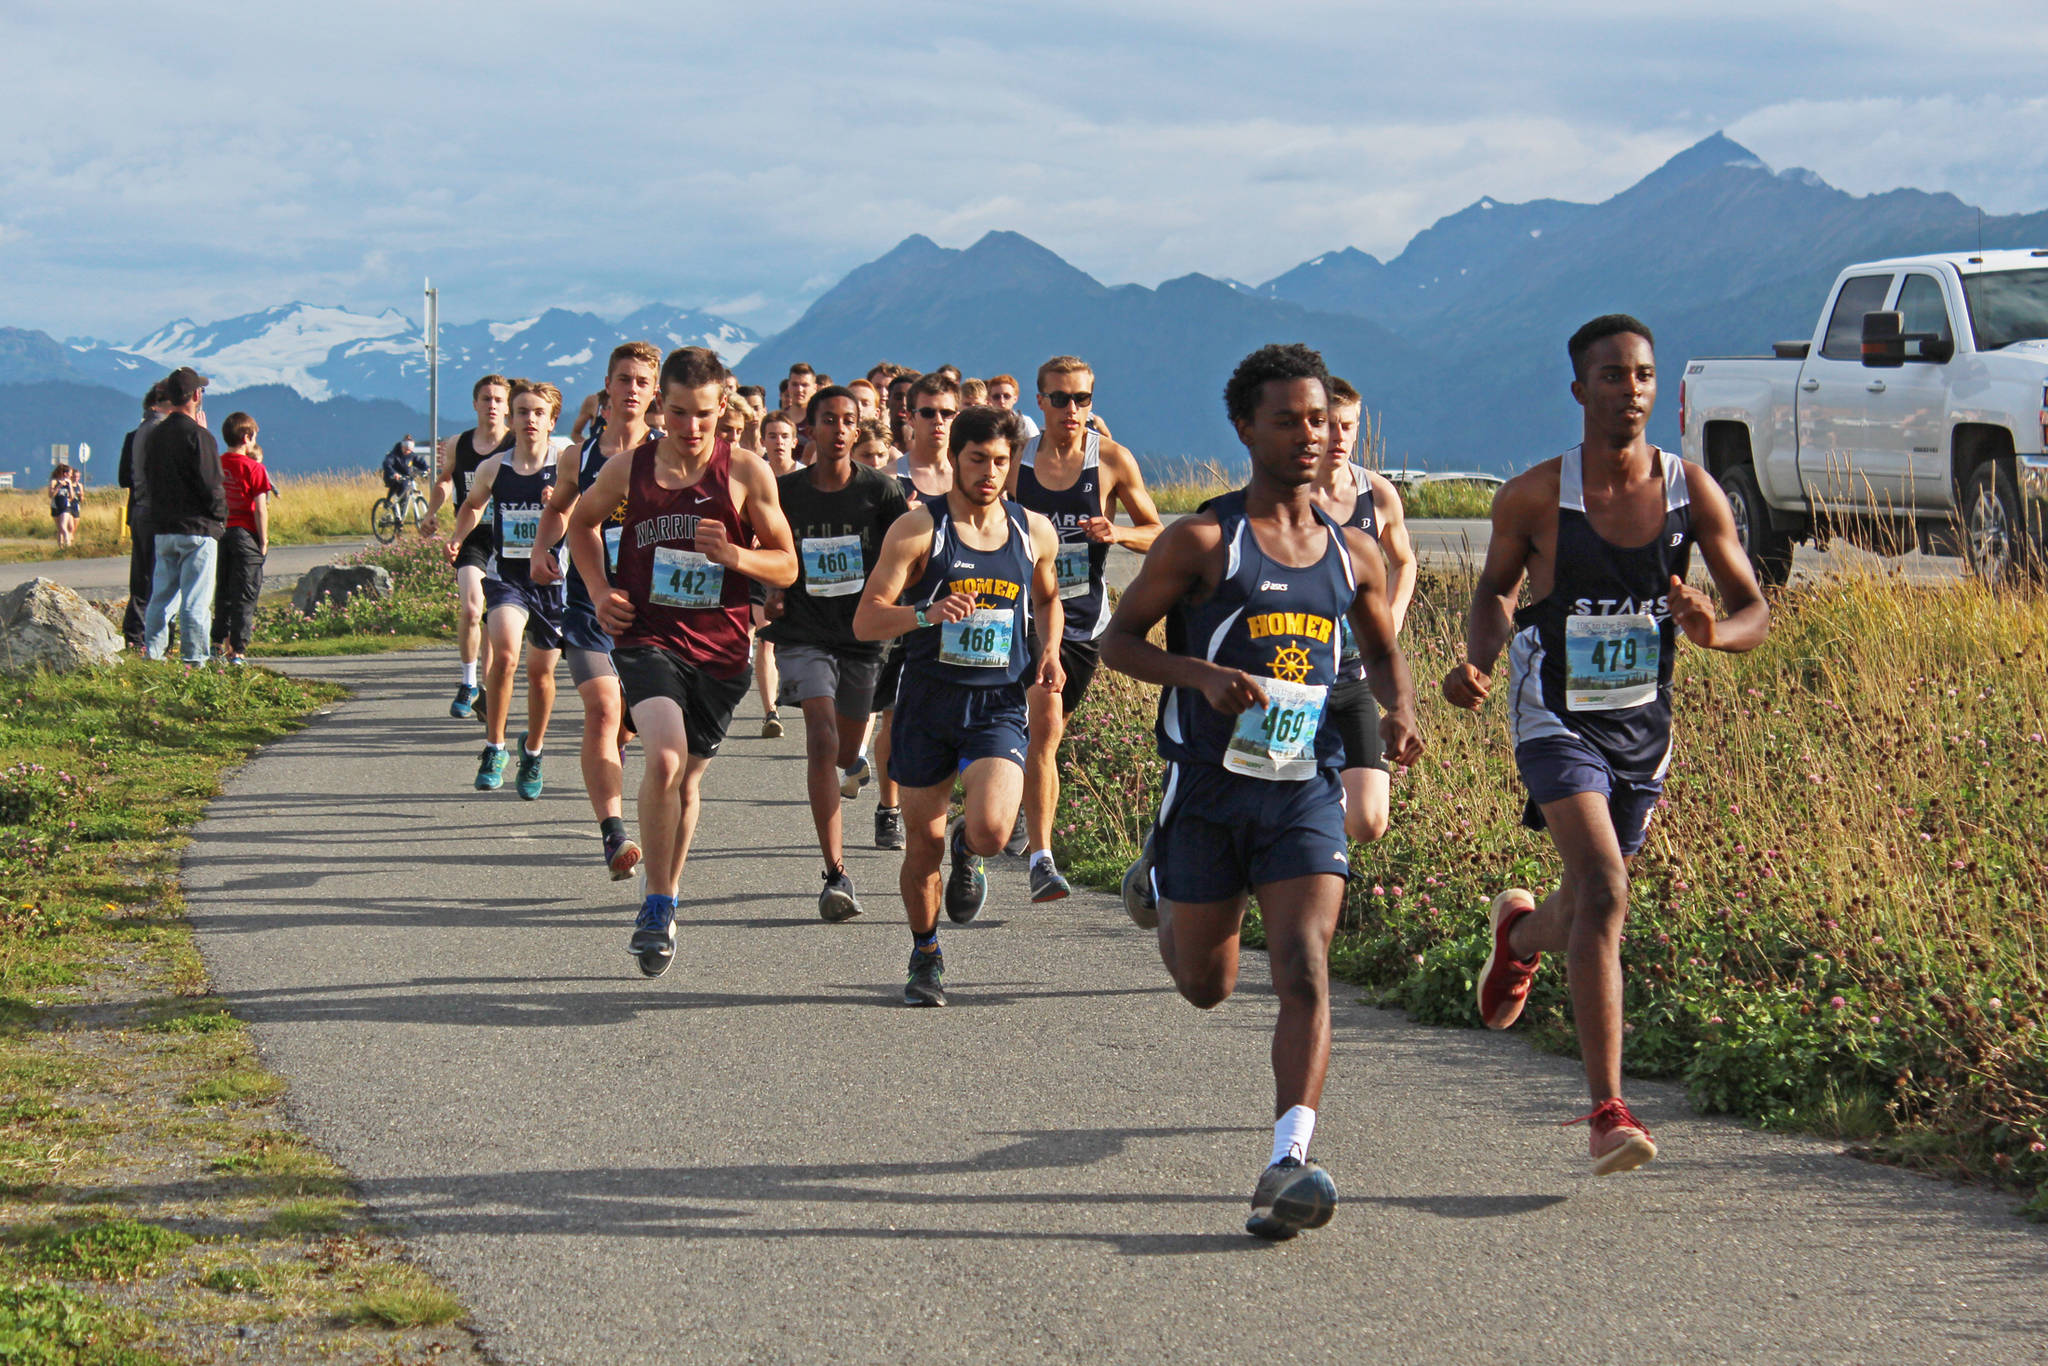 Cross-country runners take off from the starting line of the boys 5K Spit Run during the Homer Invitational on Friday, Sept. 7, 2018 on the Homer Spit in Homer, Alaska. The Soldotna boys team took first place, beating the Homer boys team by four points. (Photo by Megan Pacer/Homer News)